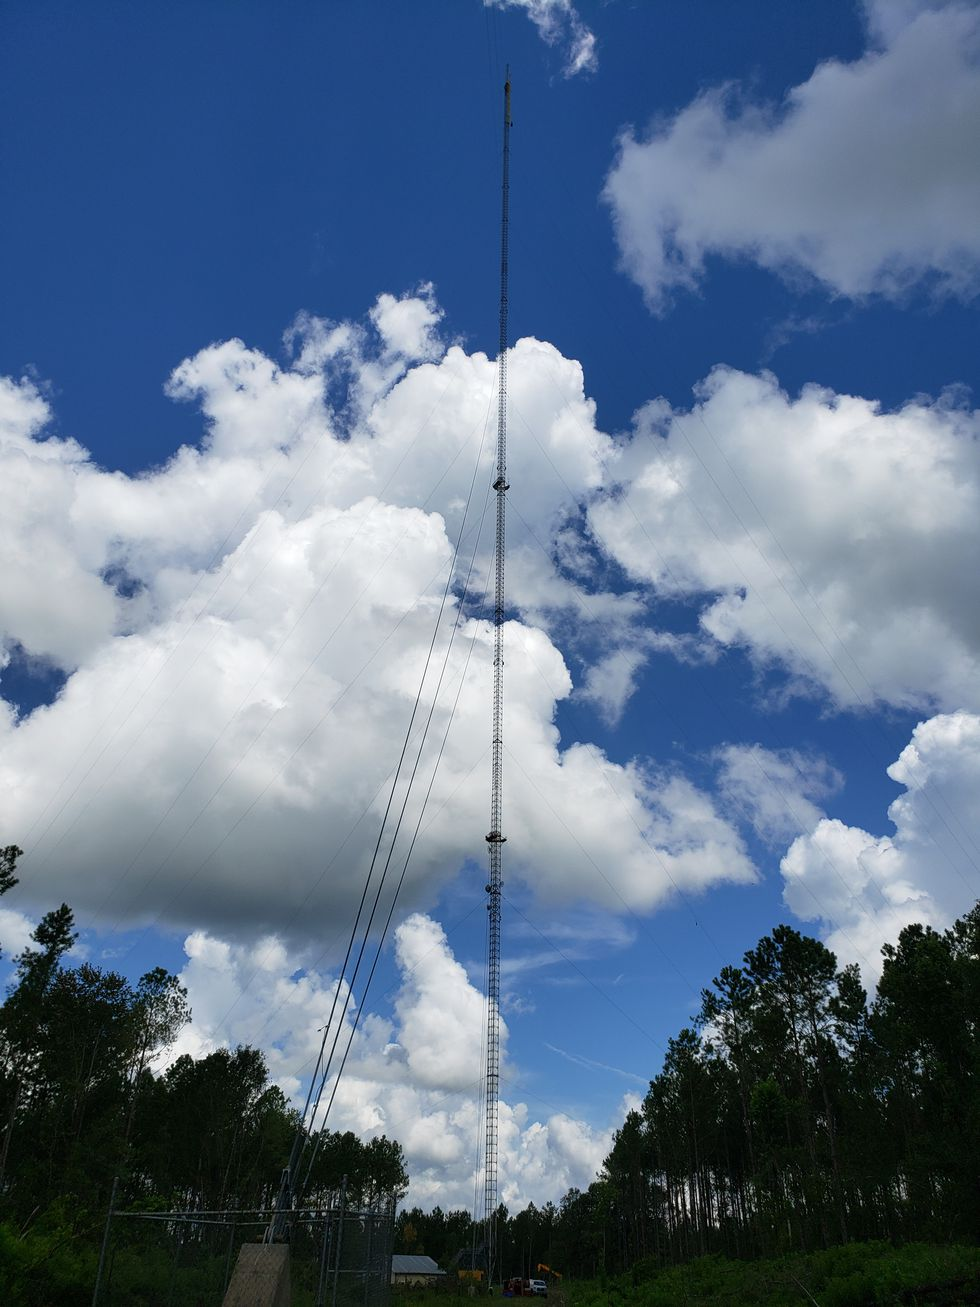 In about two and a half weeks, this tower will be at full strength, delivering WCTV to homes throughout South Georgia and the Big Bend.